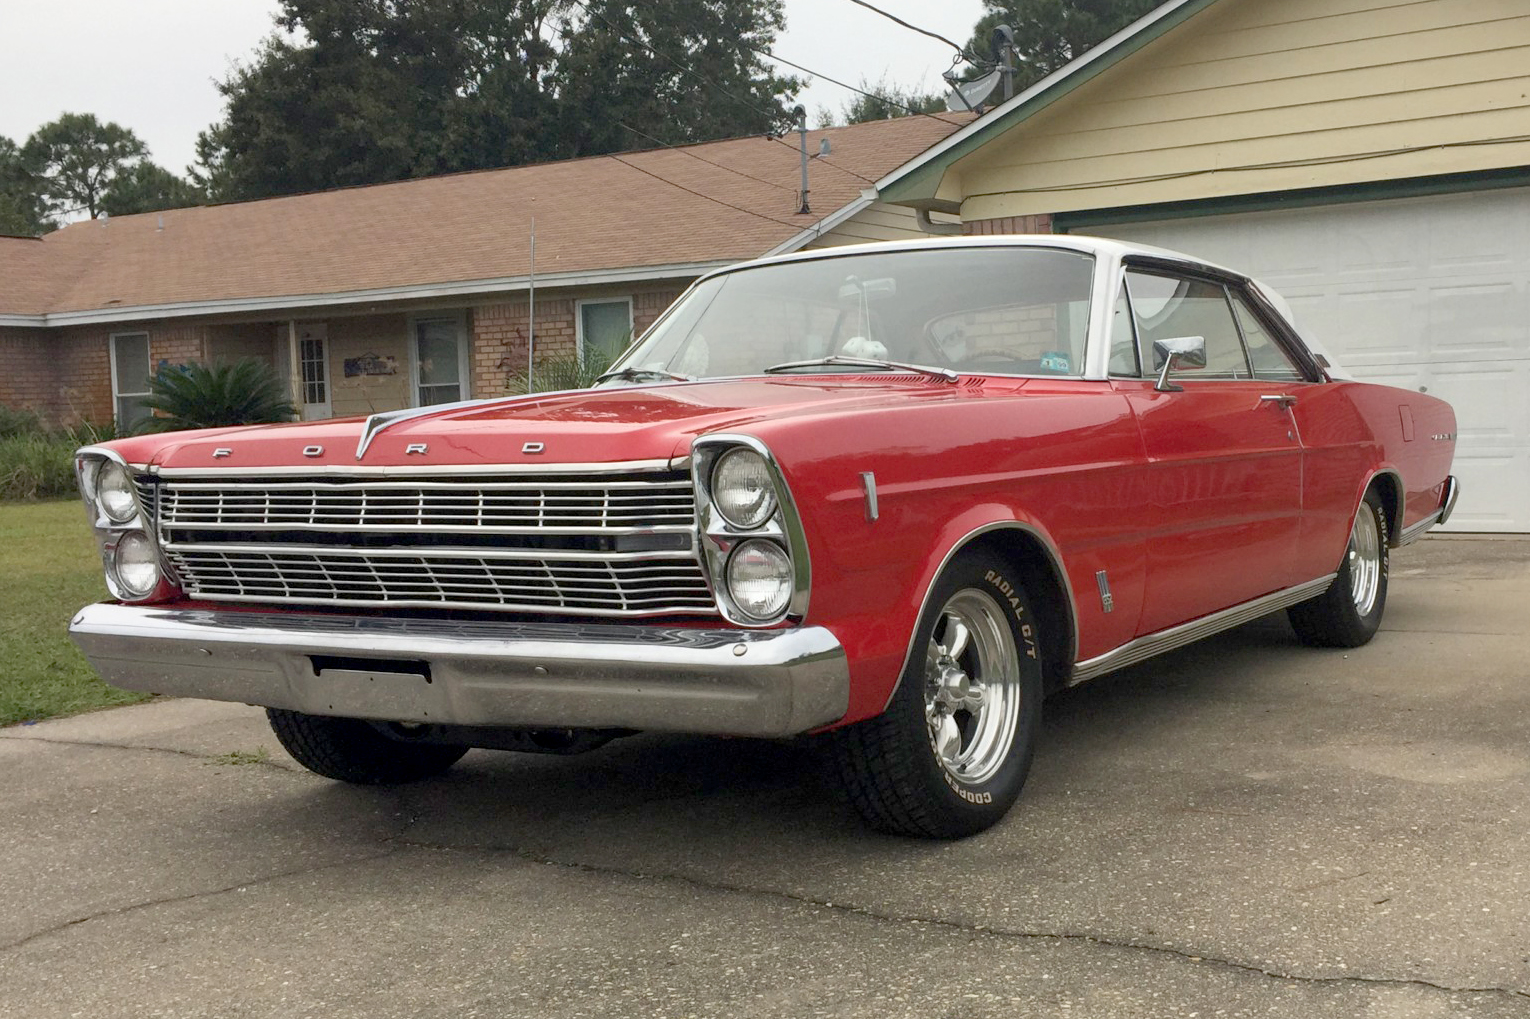 hight resolution of 1966 ford galaxie 500 for sale on bat auctions closed on november 12 2018 lot 13 976 bring a trailer